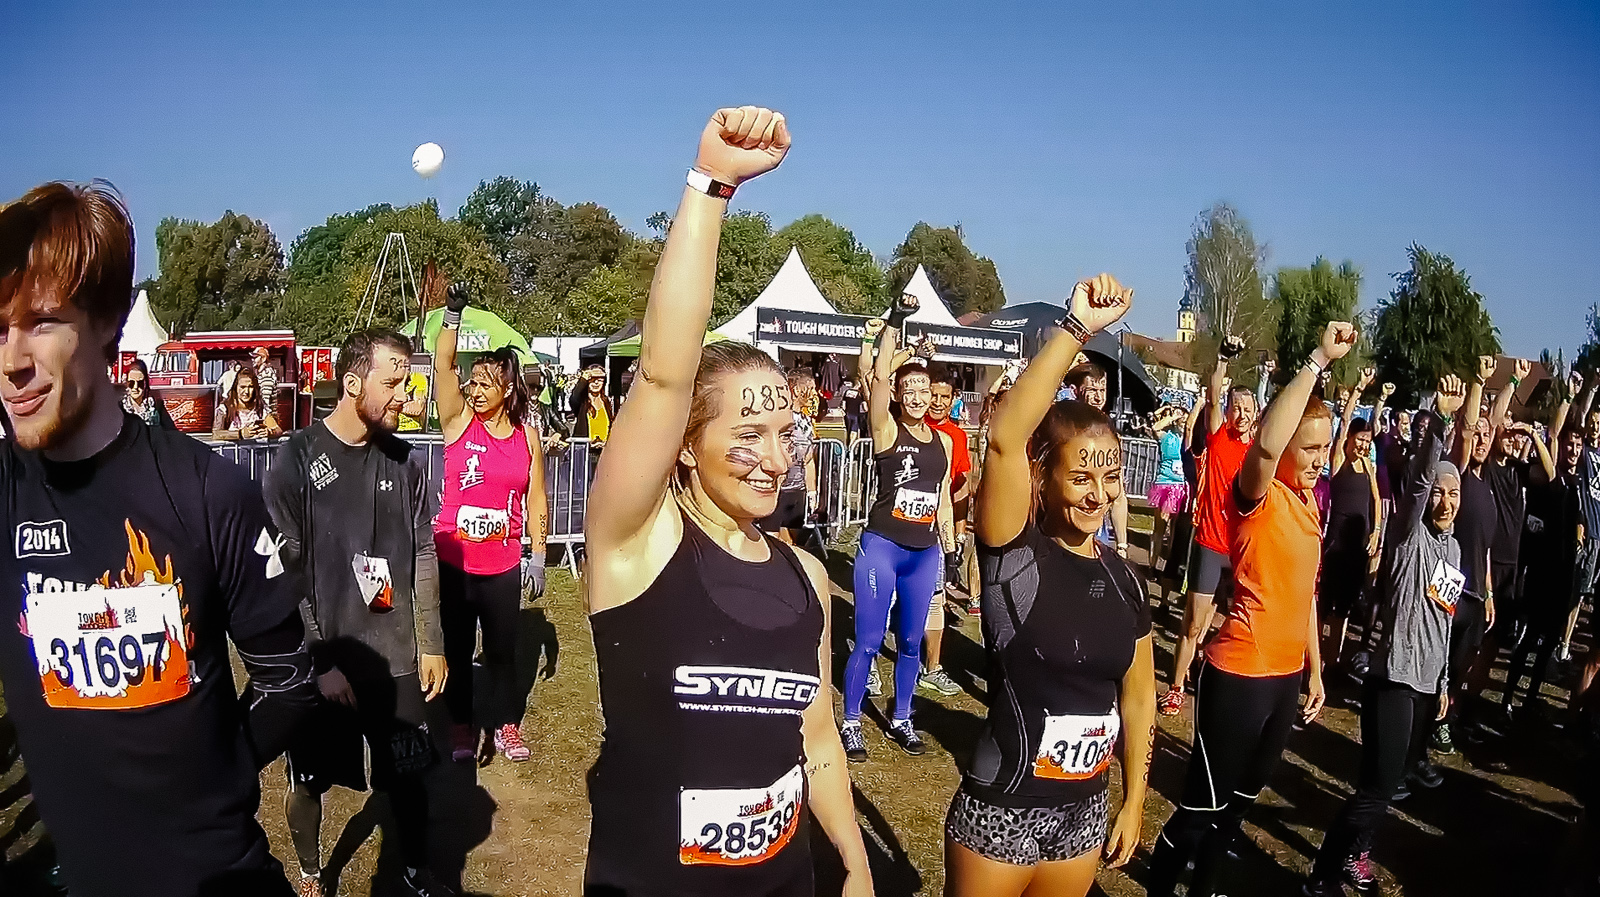 fitnessblog-fitnessblogger-fitness-blog-blogger-stuttgart-dreamteamfitness-tough-mudder-93